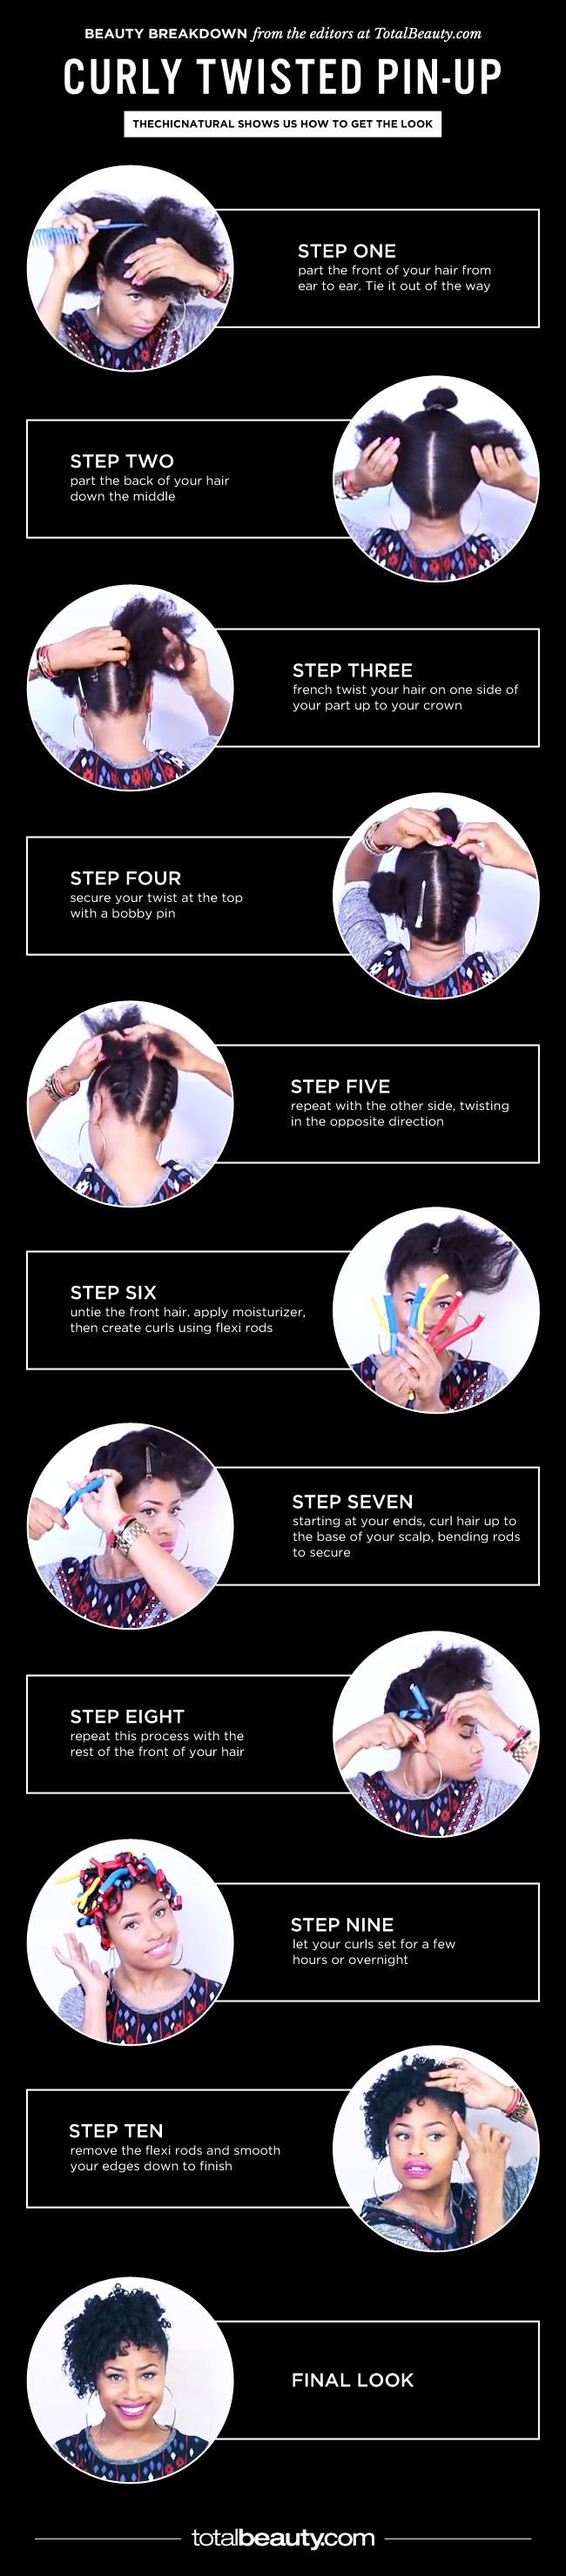 Try This: Curly Twisted Pin-Up...Get more of us>>>.HAIR NEWS NETWORK on Facebook... https://www.facebook.com/HairNewsNetwork